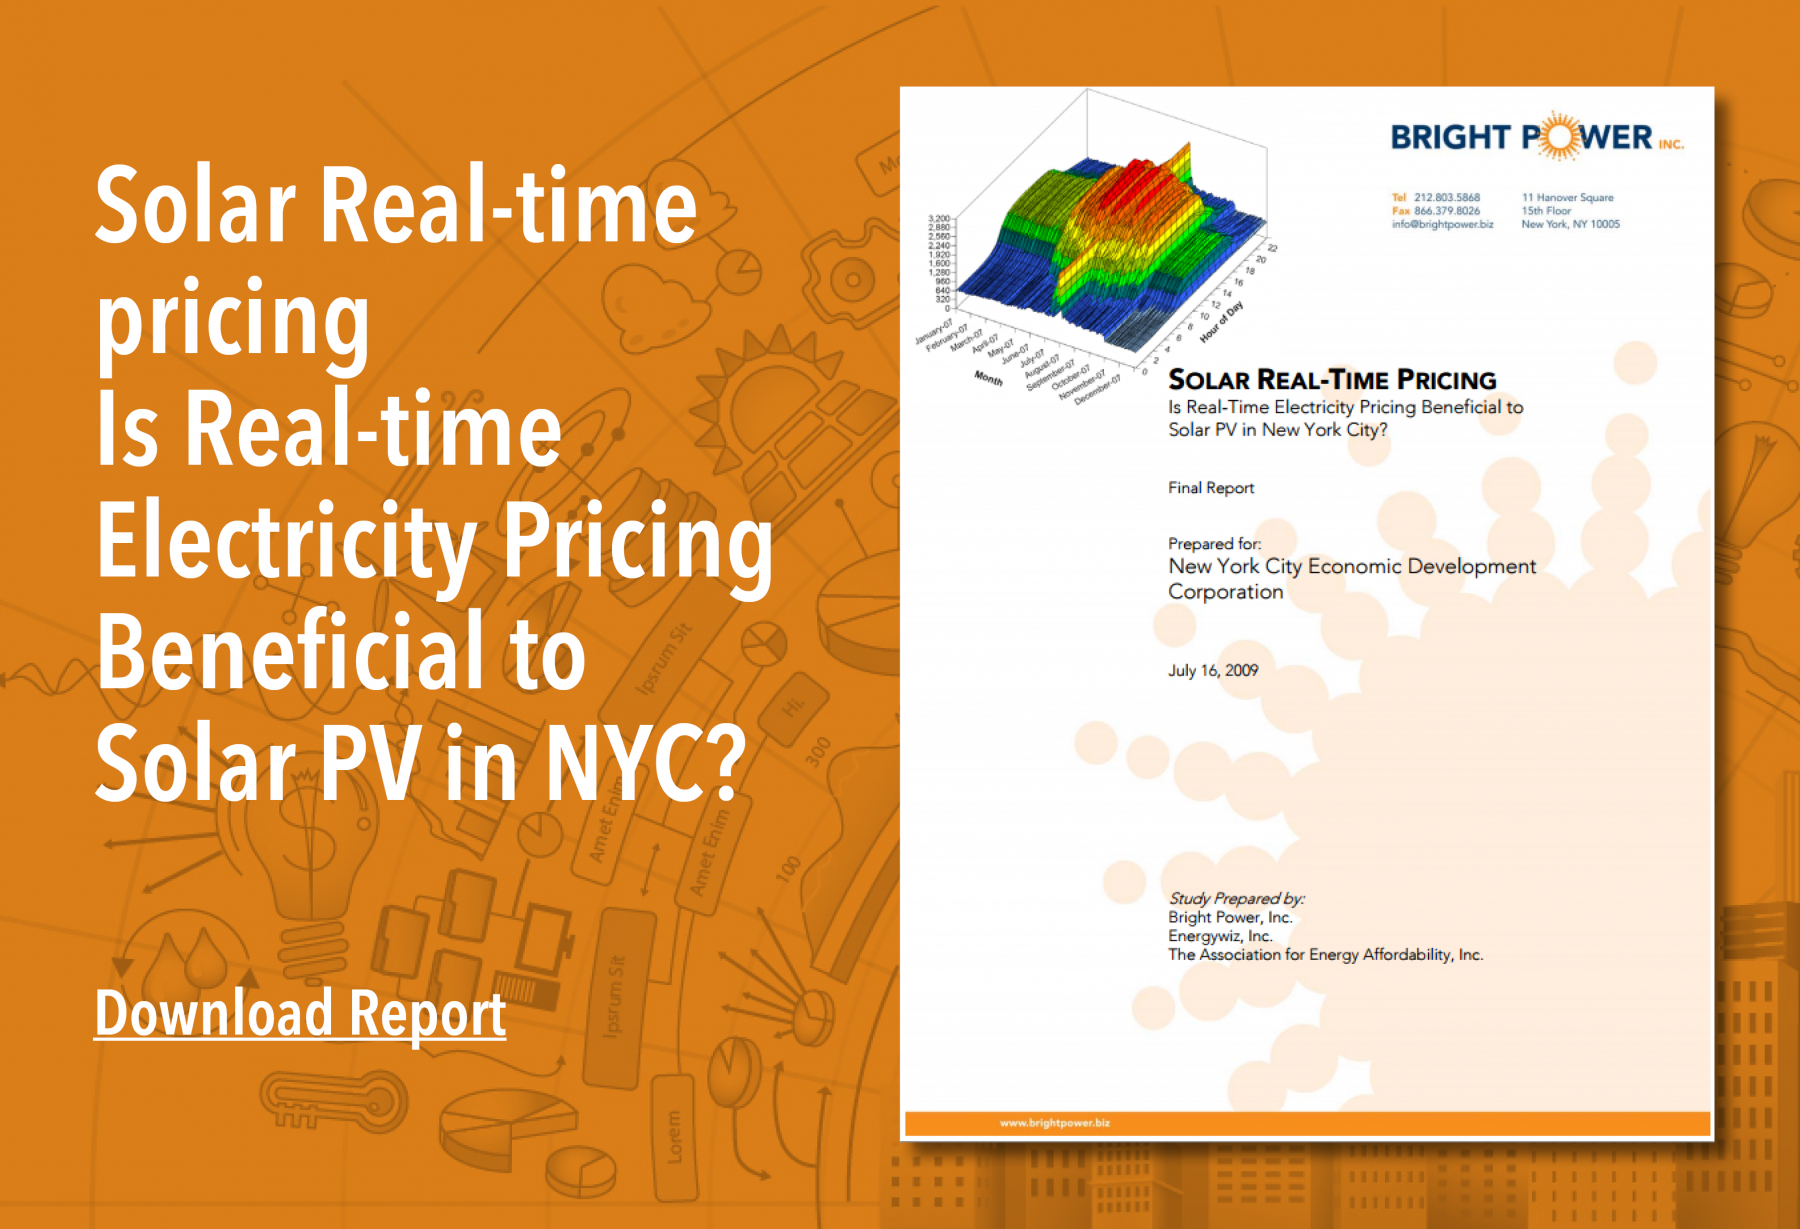 Solar real-time pricing